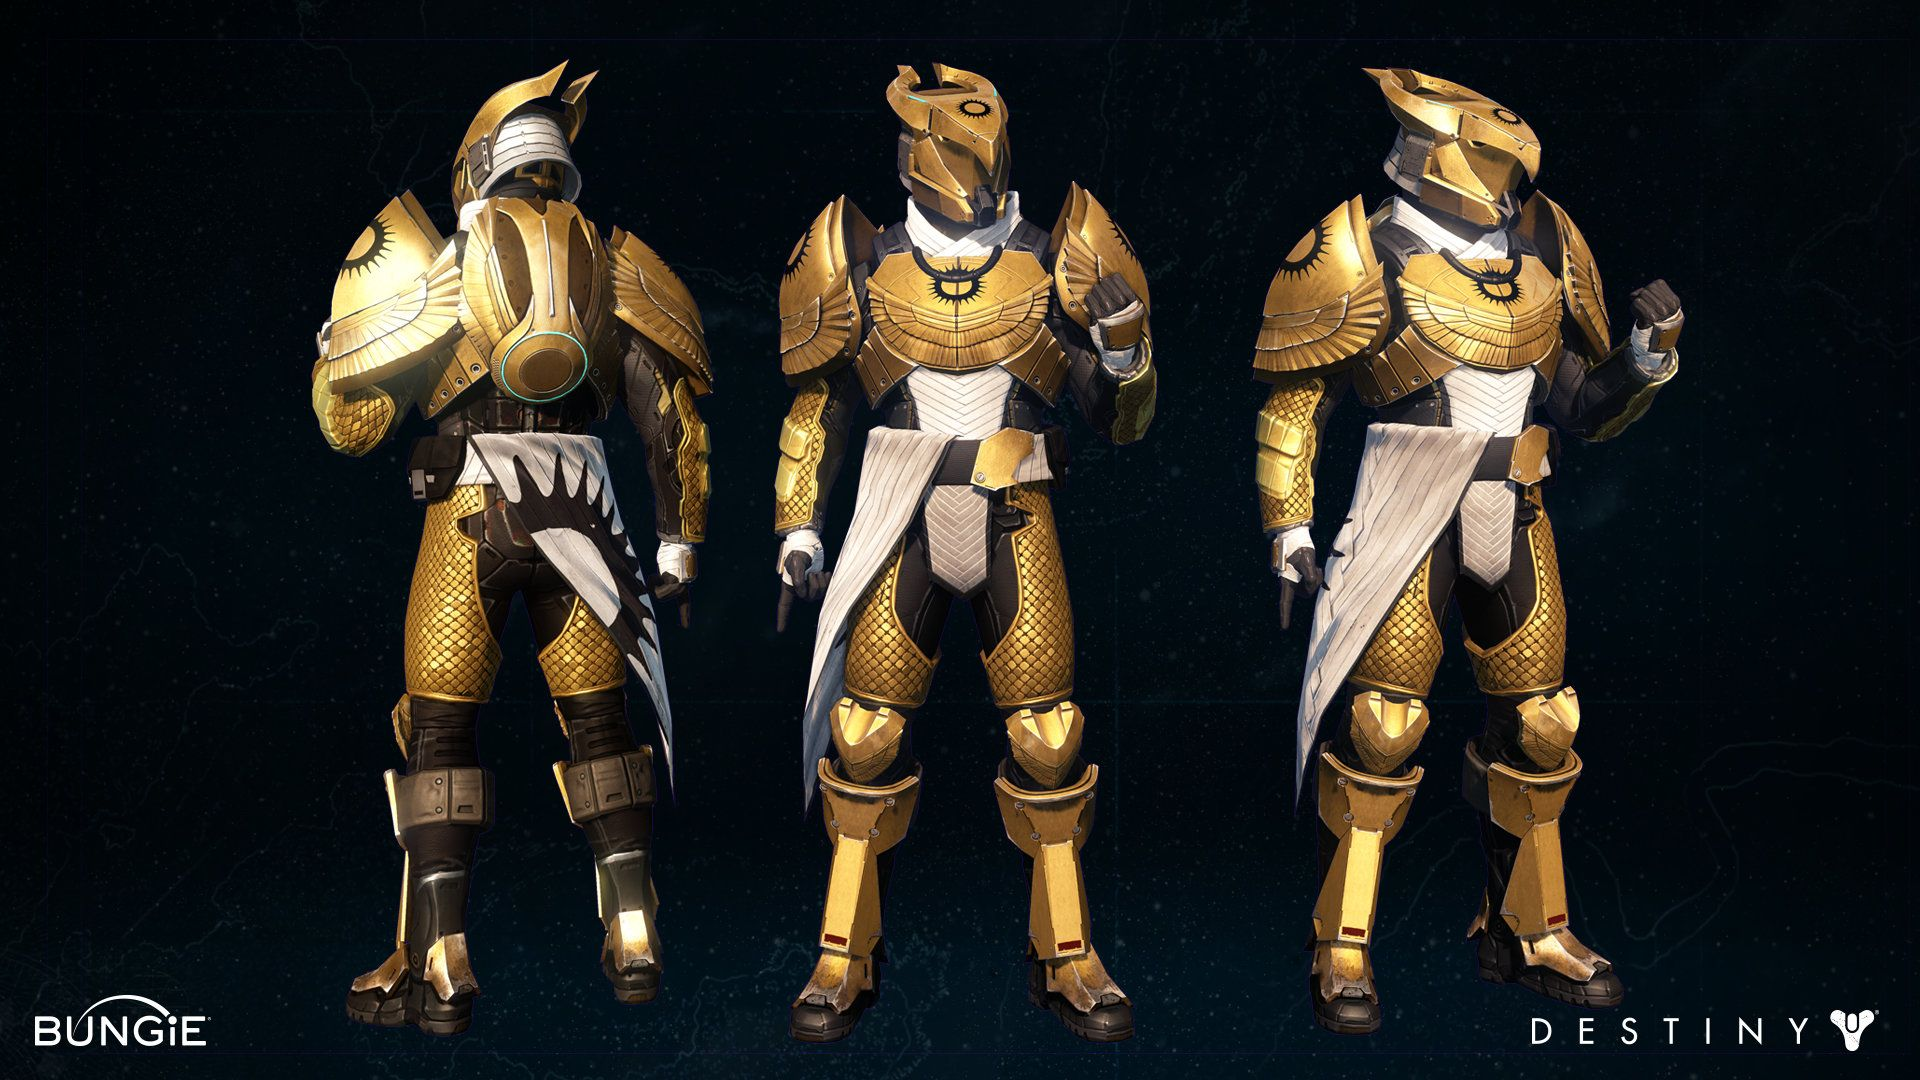 Image result for trials of osiris imagesize:1920x1080